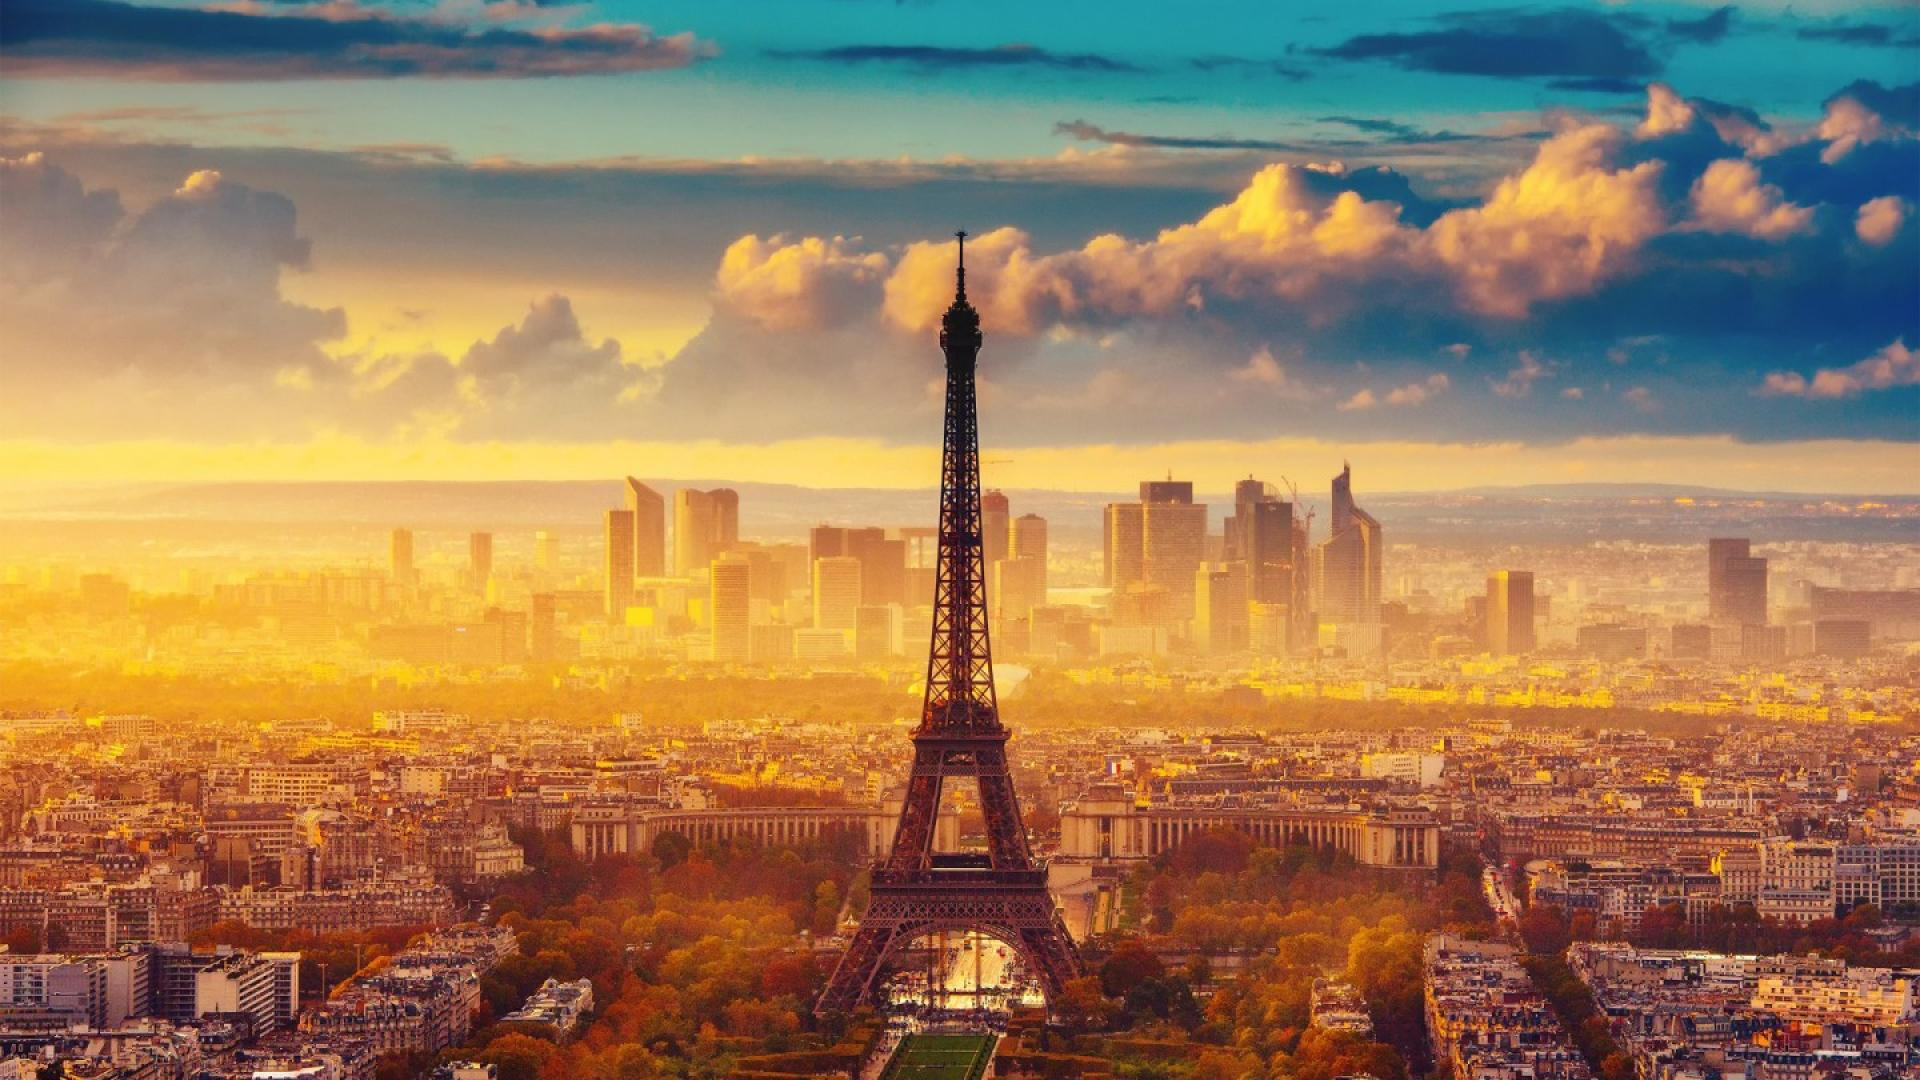 eiffel-tower-wallpaper-18_fRZLW4V